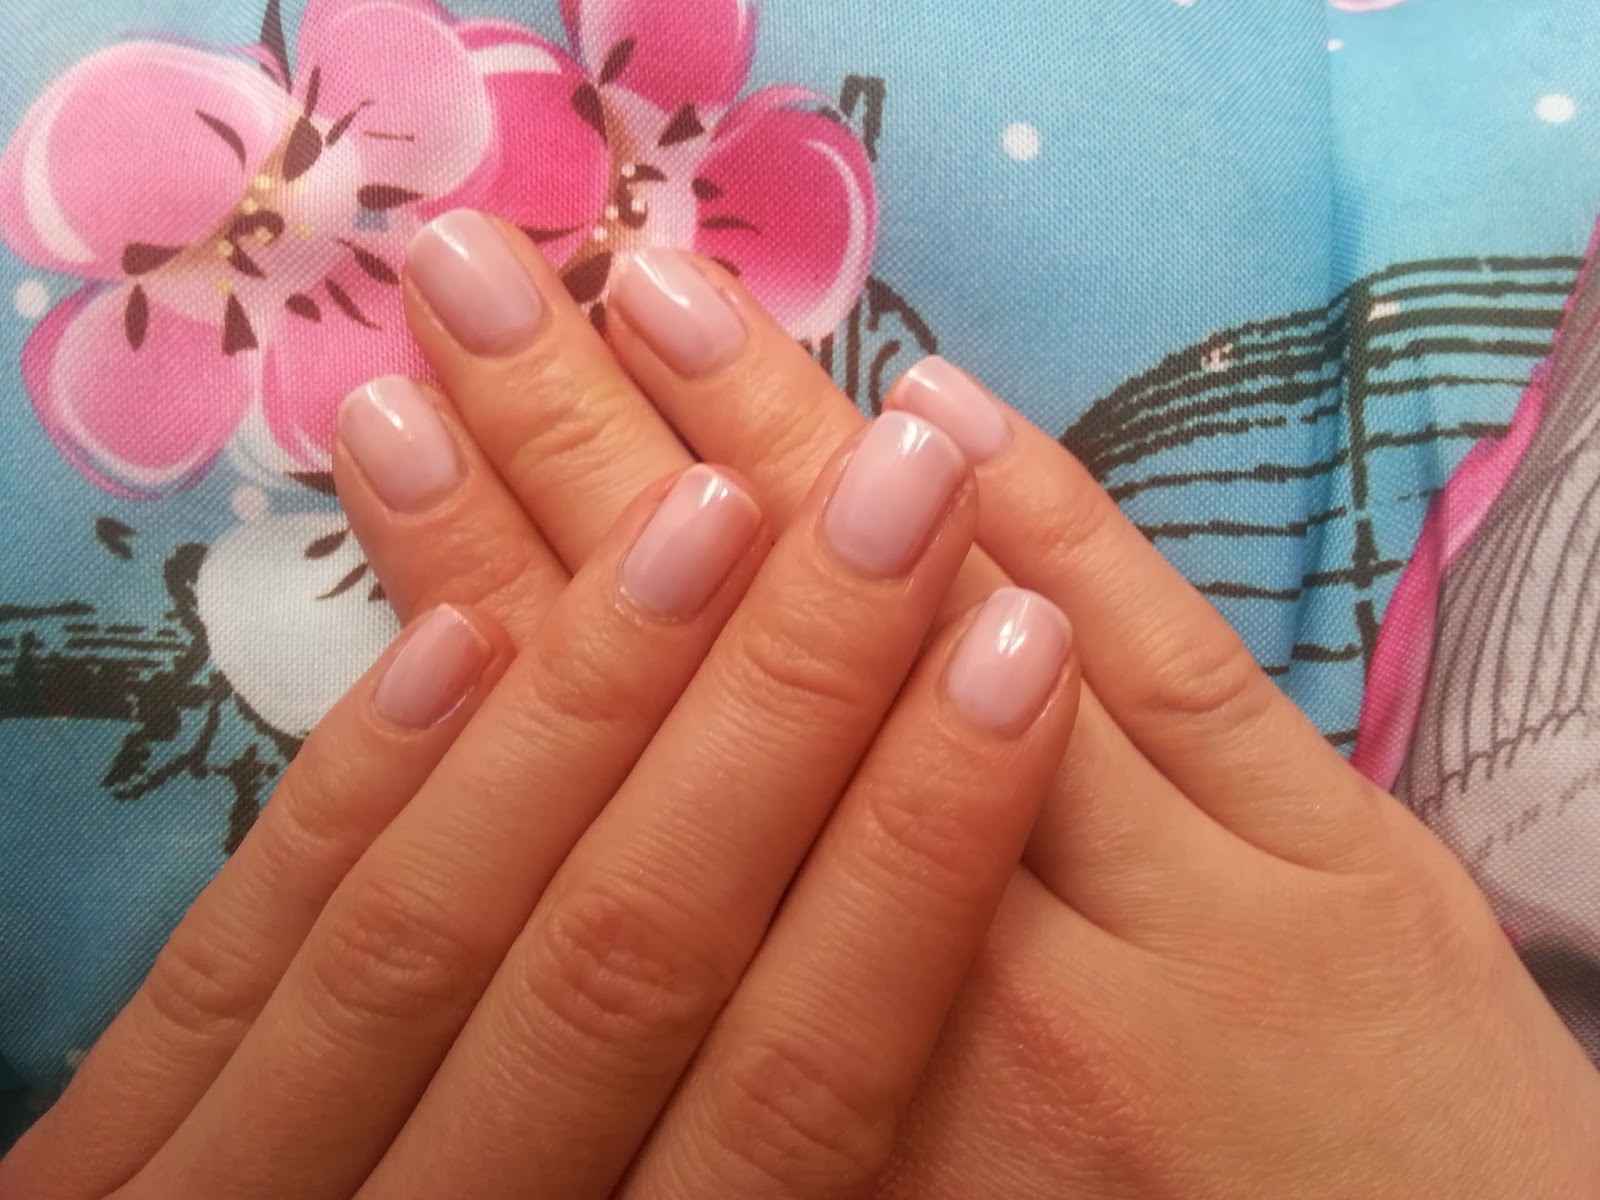 Essence Studio Nails - Pro White Rose Nagellack - www.annitschkasblog.de